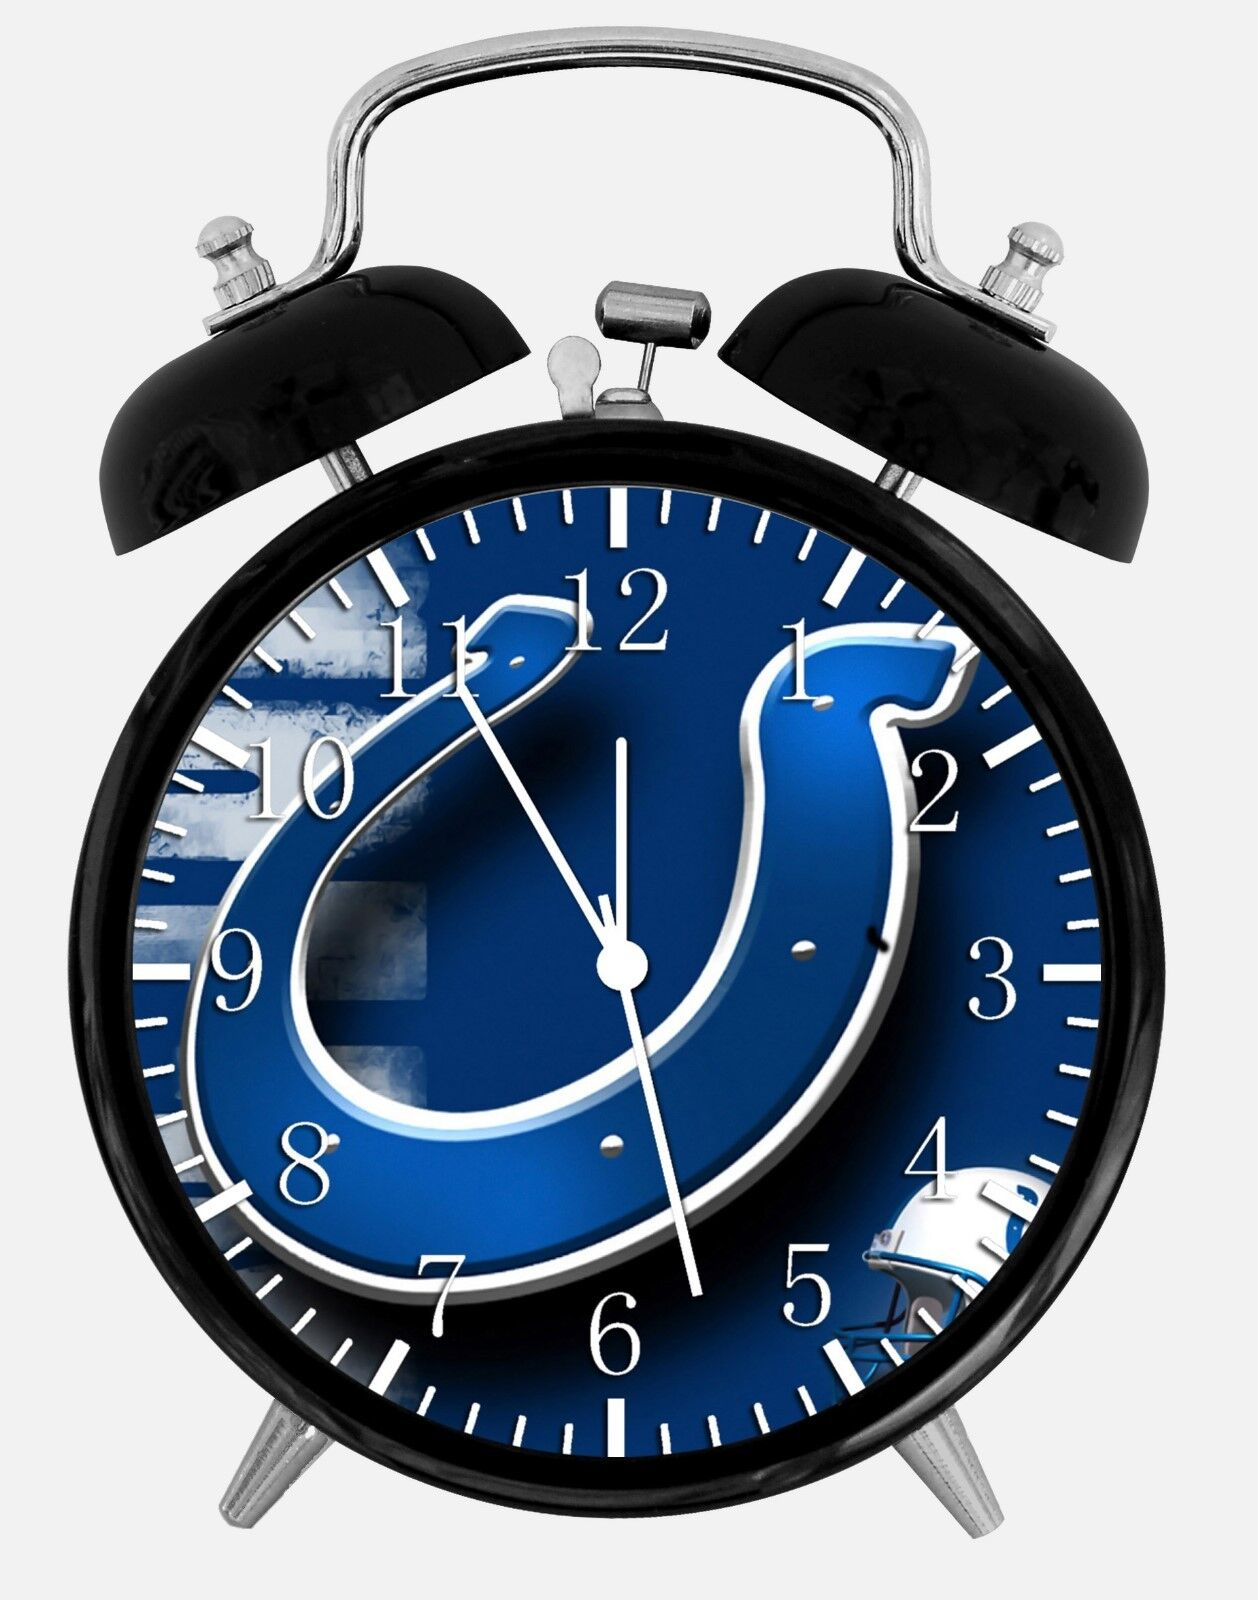 """Indianapolis Colts Alarm Desk Clock 3.75"""" Room Office Decor W25 Be A Nice Gift"""